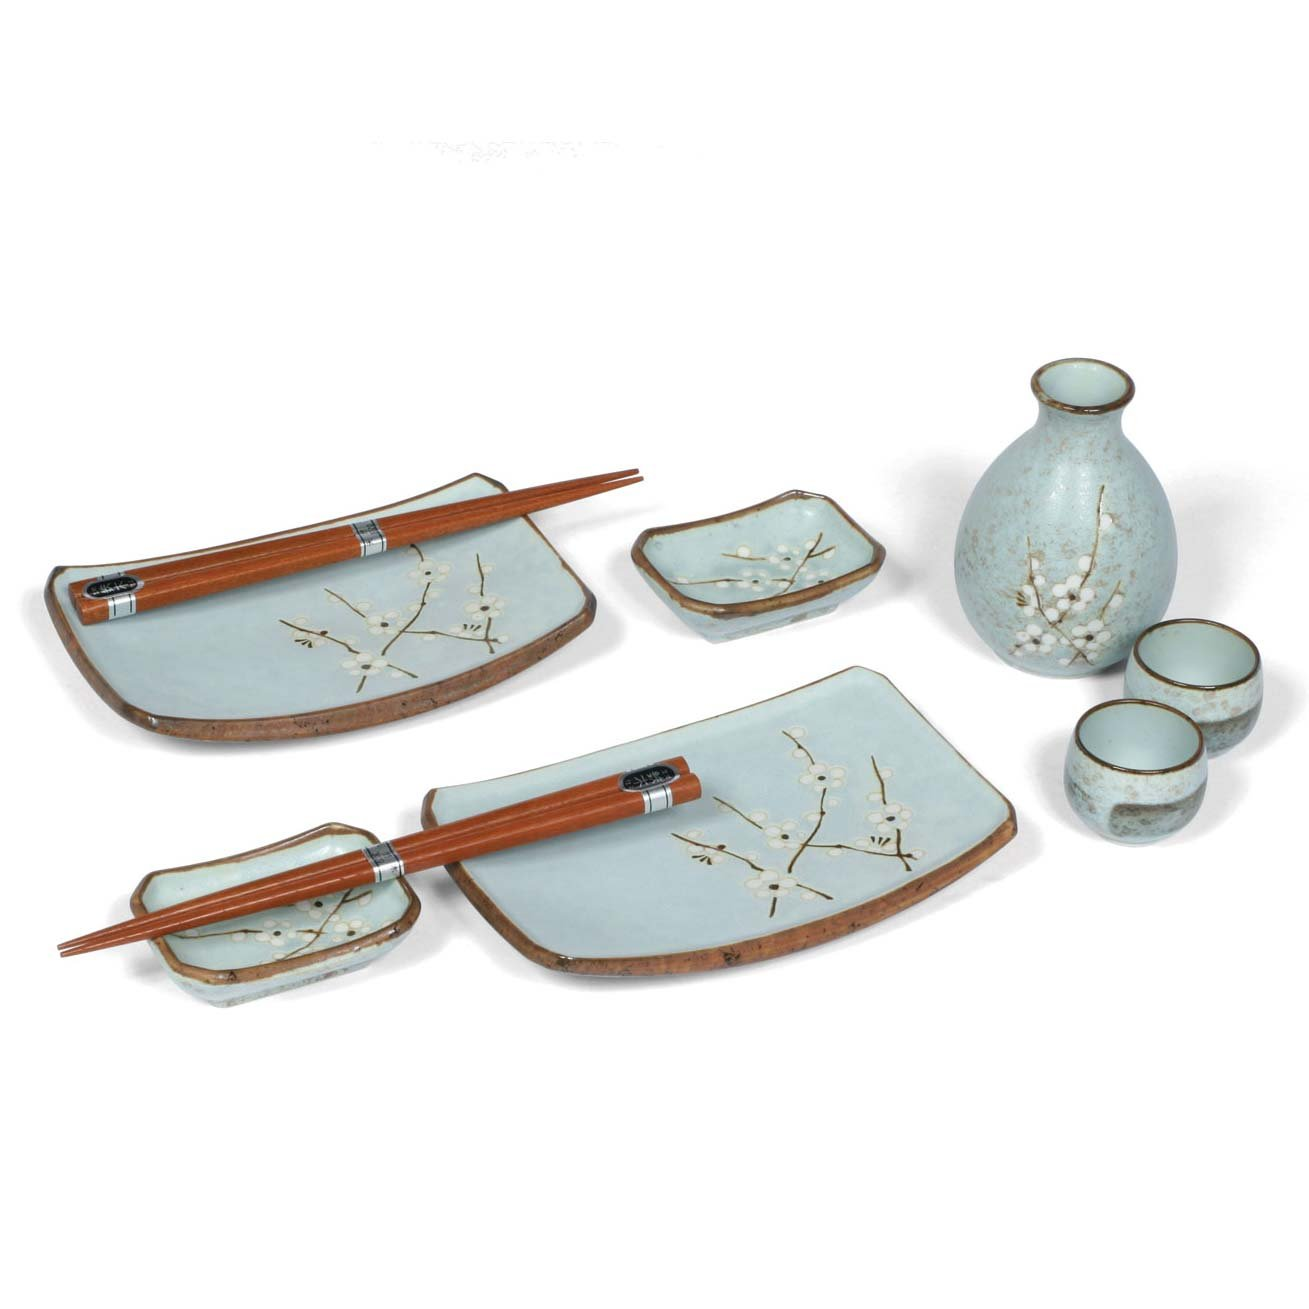 Japanese Sushi And Sake Set For Two for Two with Chopsticks, Spring Blossom